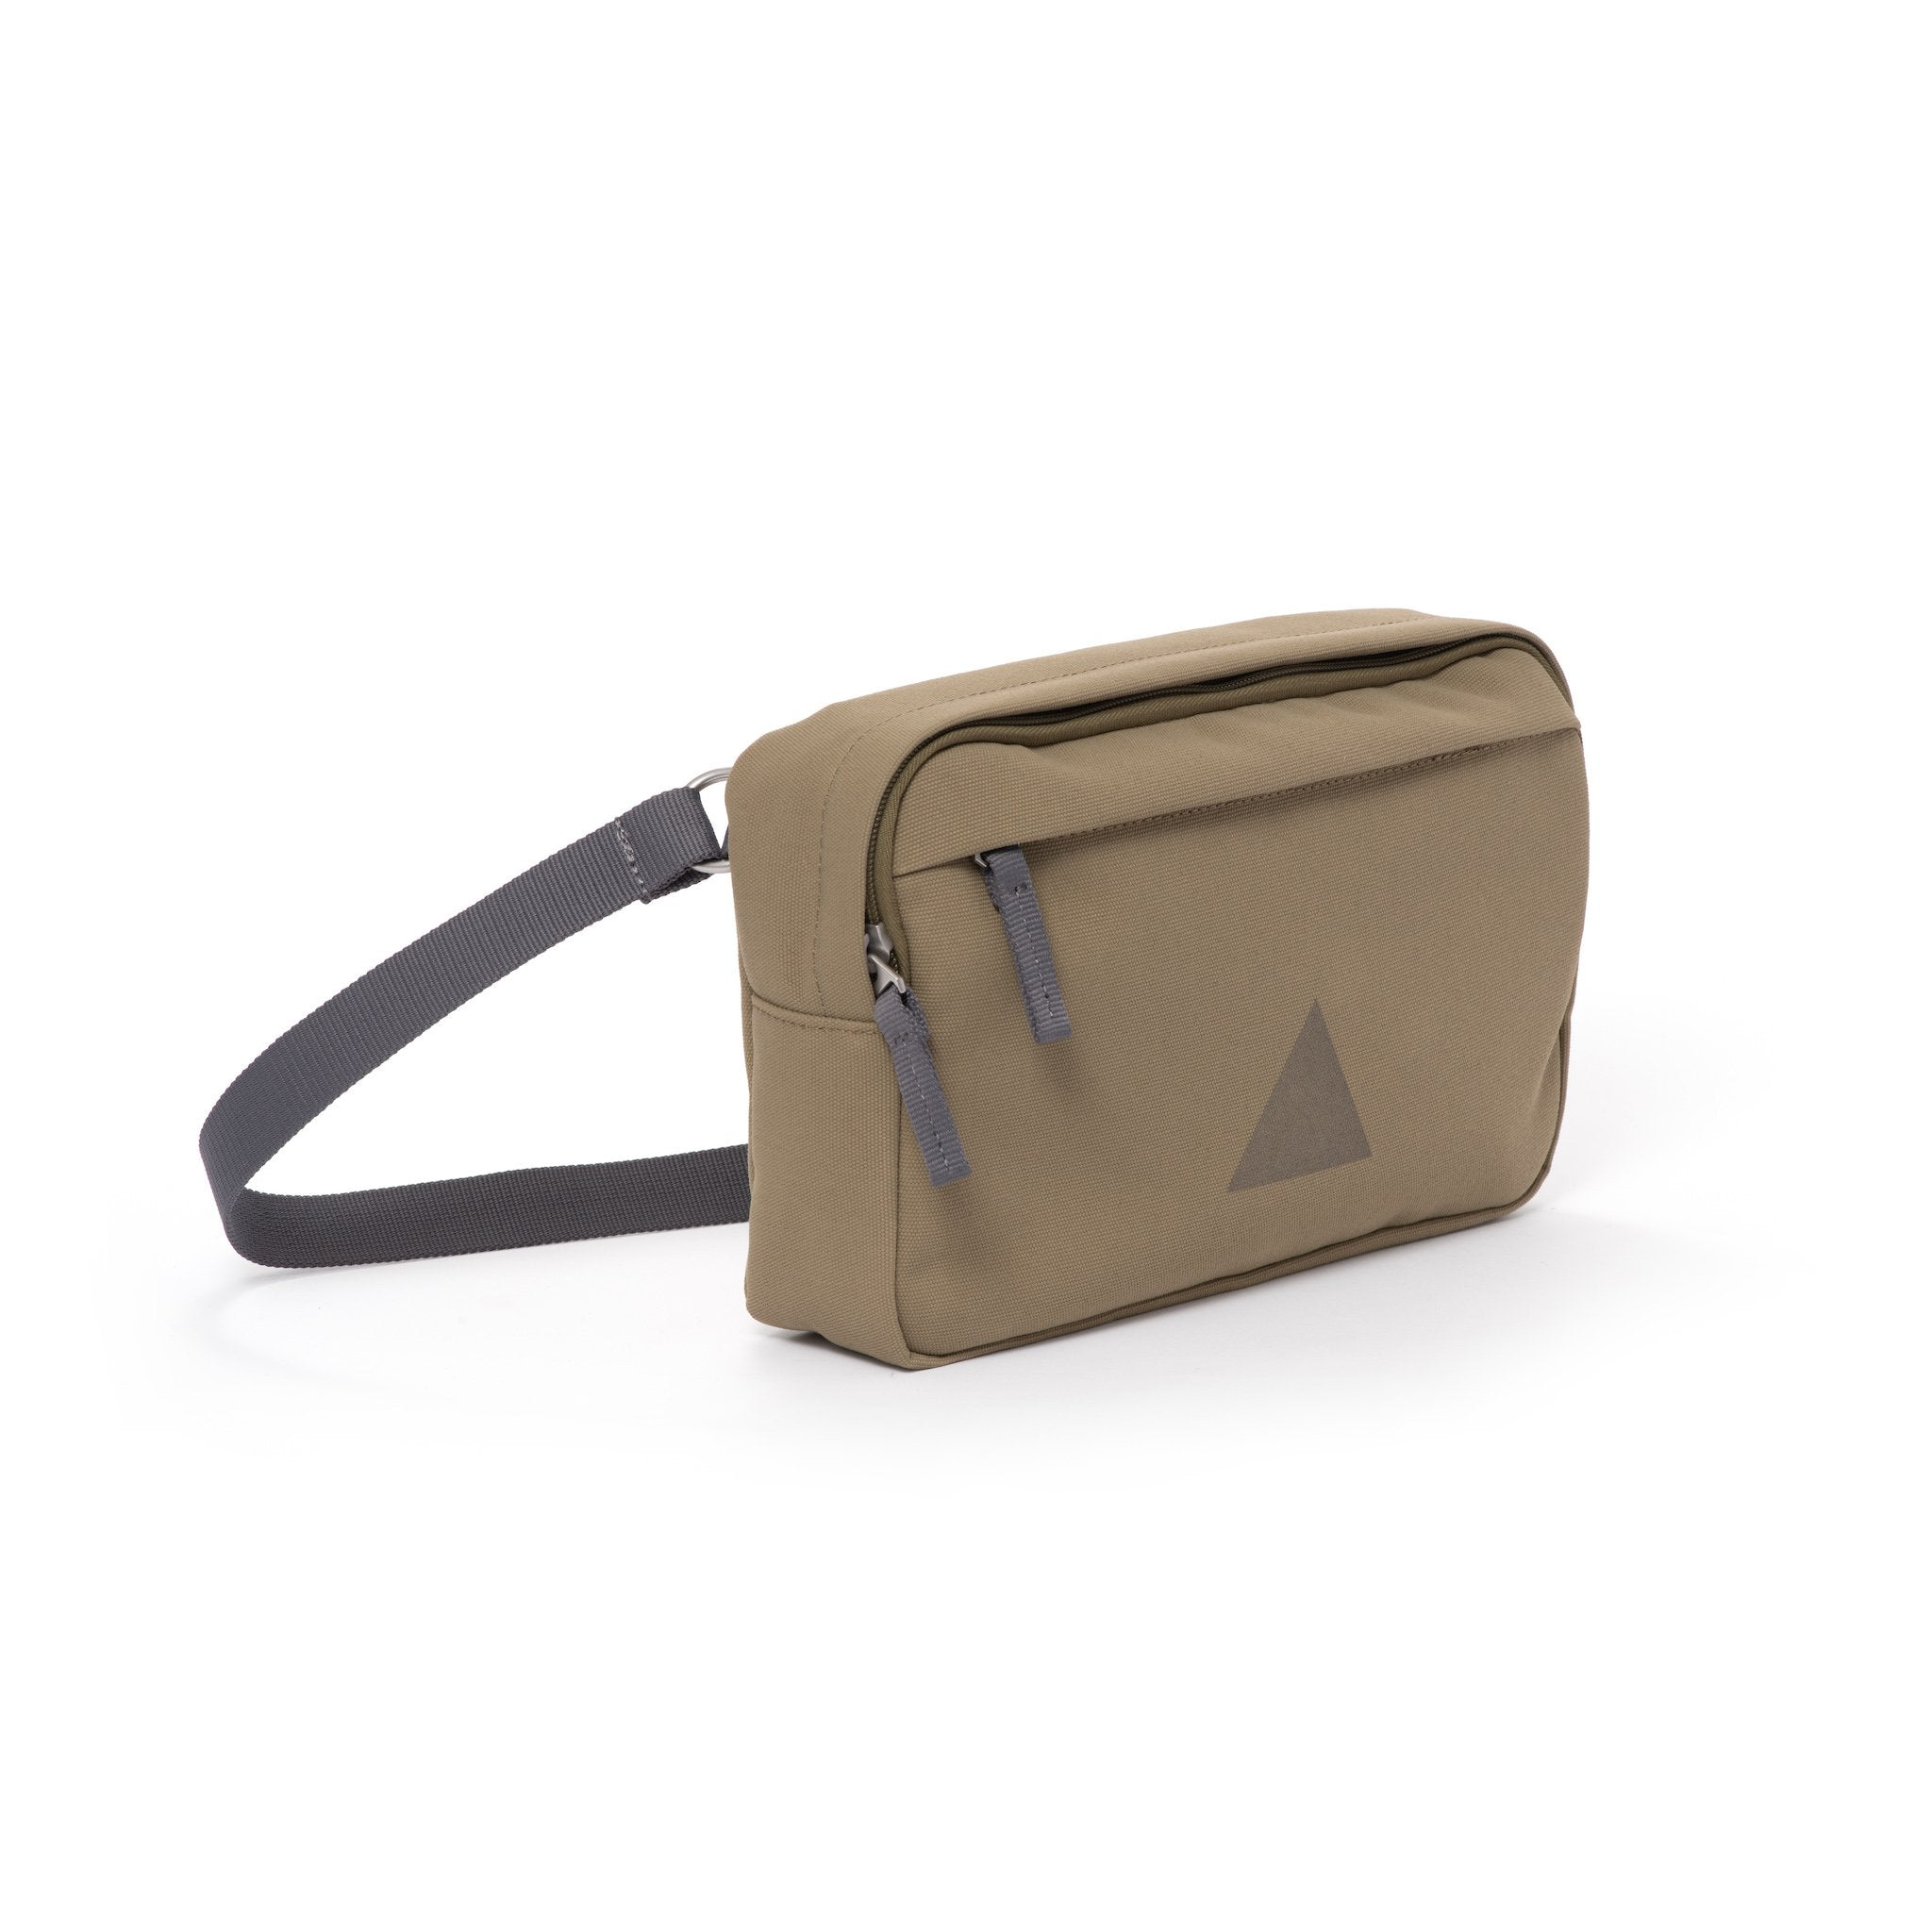 Khaki canvas shoulder bag with zip pockets and webbing strap.